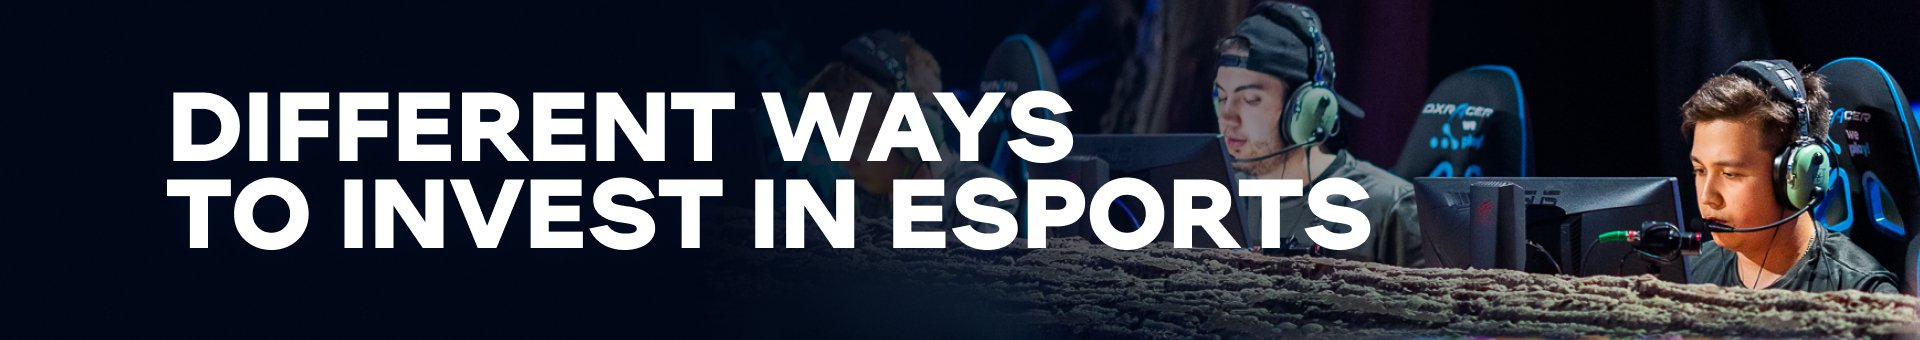 Different ways to invest in esports